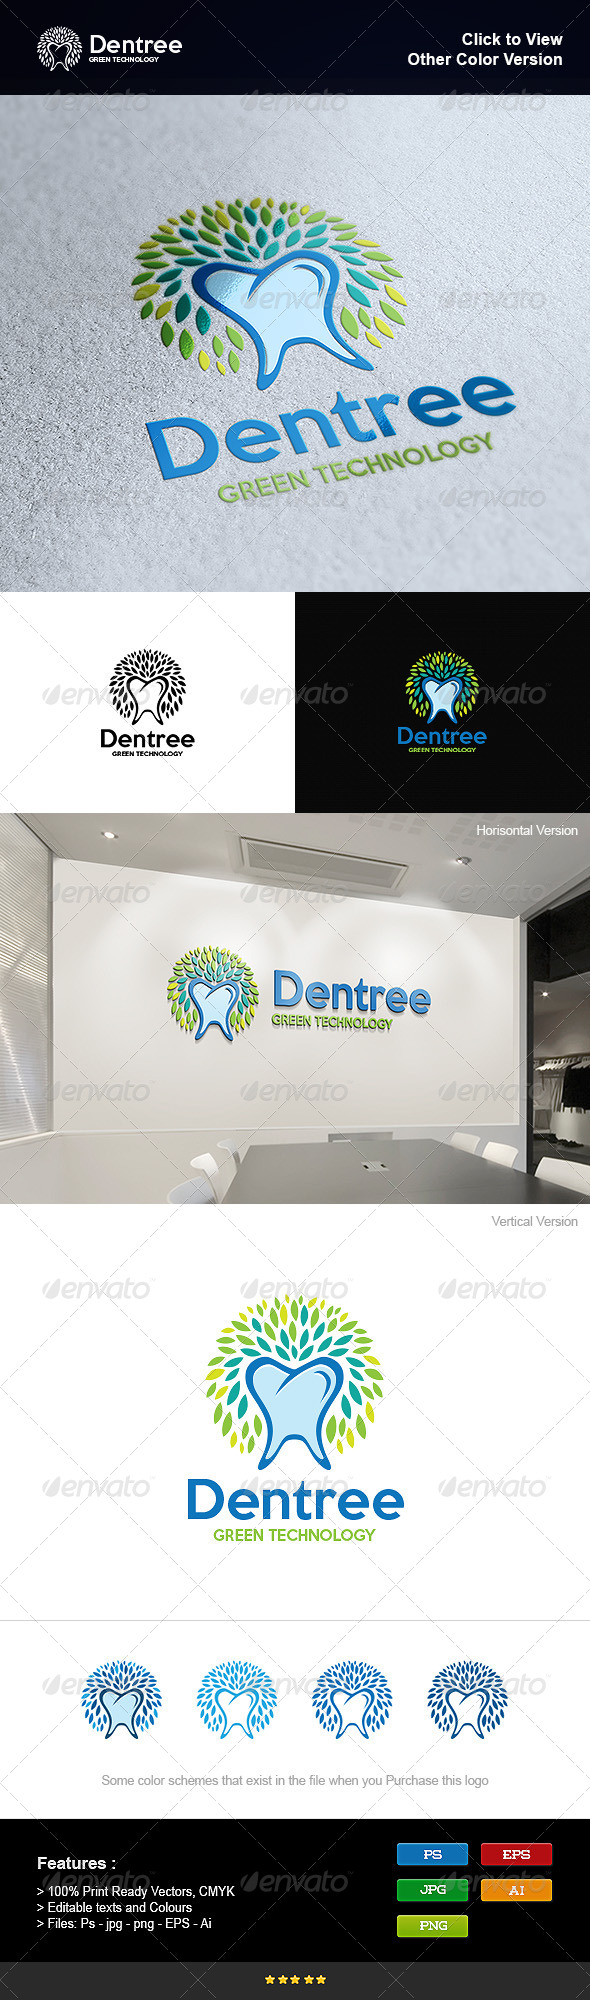 GraphicRiver Health Dental Tree 8295441